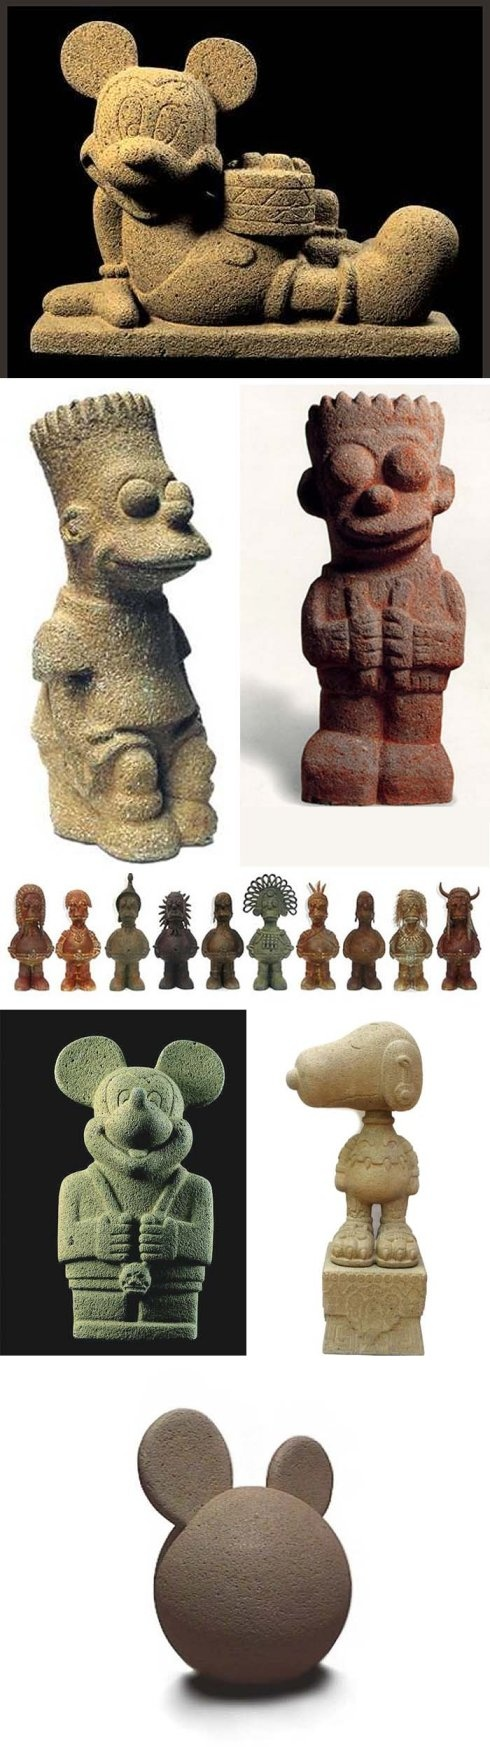 Nadin Ospina, Simpsons, Mickey Mouse, Snoopy, Cartoon characters in stone, Contemporary Colombian art